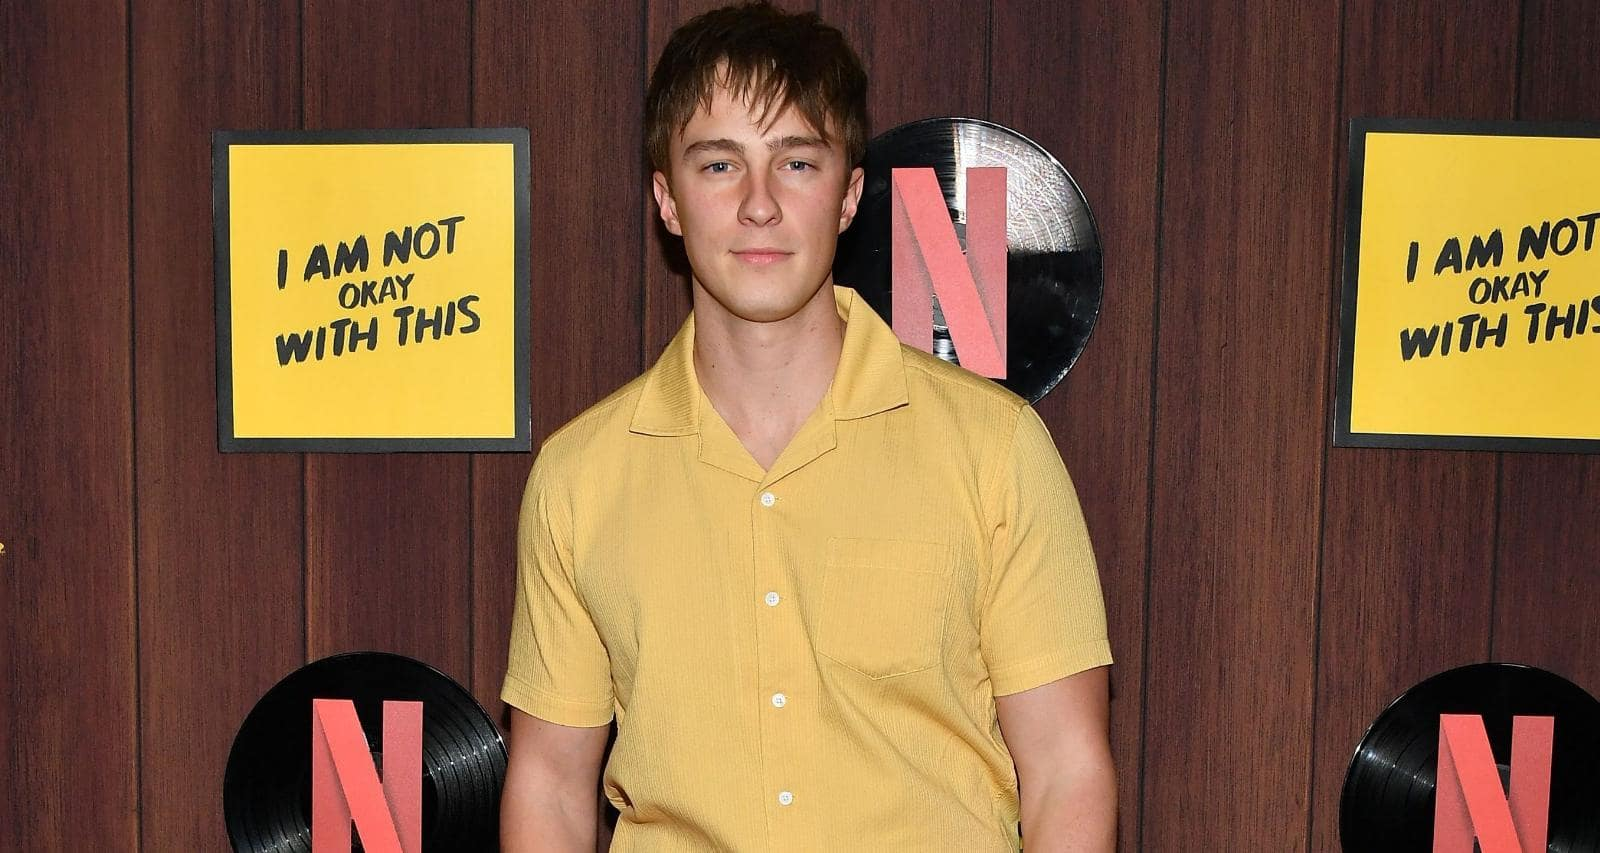 """Drew Starkey Wiki, Age, Parents, Family, Siblings, Education, Career and Facts About the Actor Playing Rafe on Netflix's """"Outer Banks"""""""